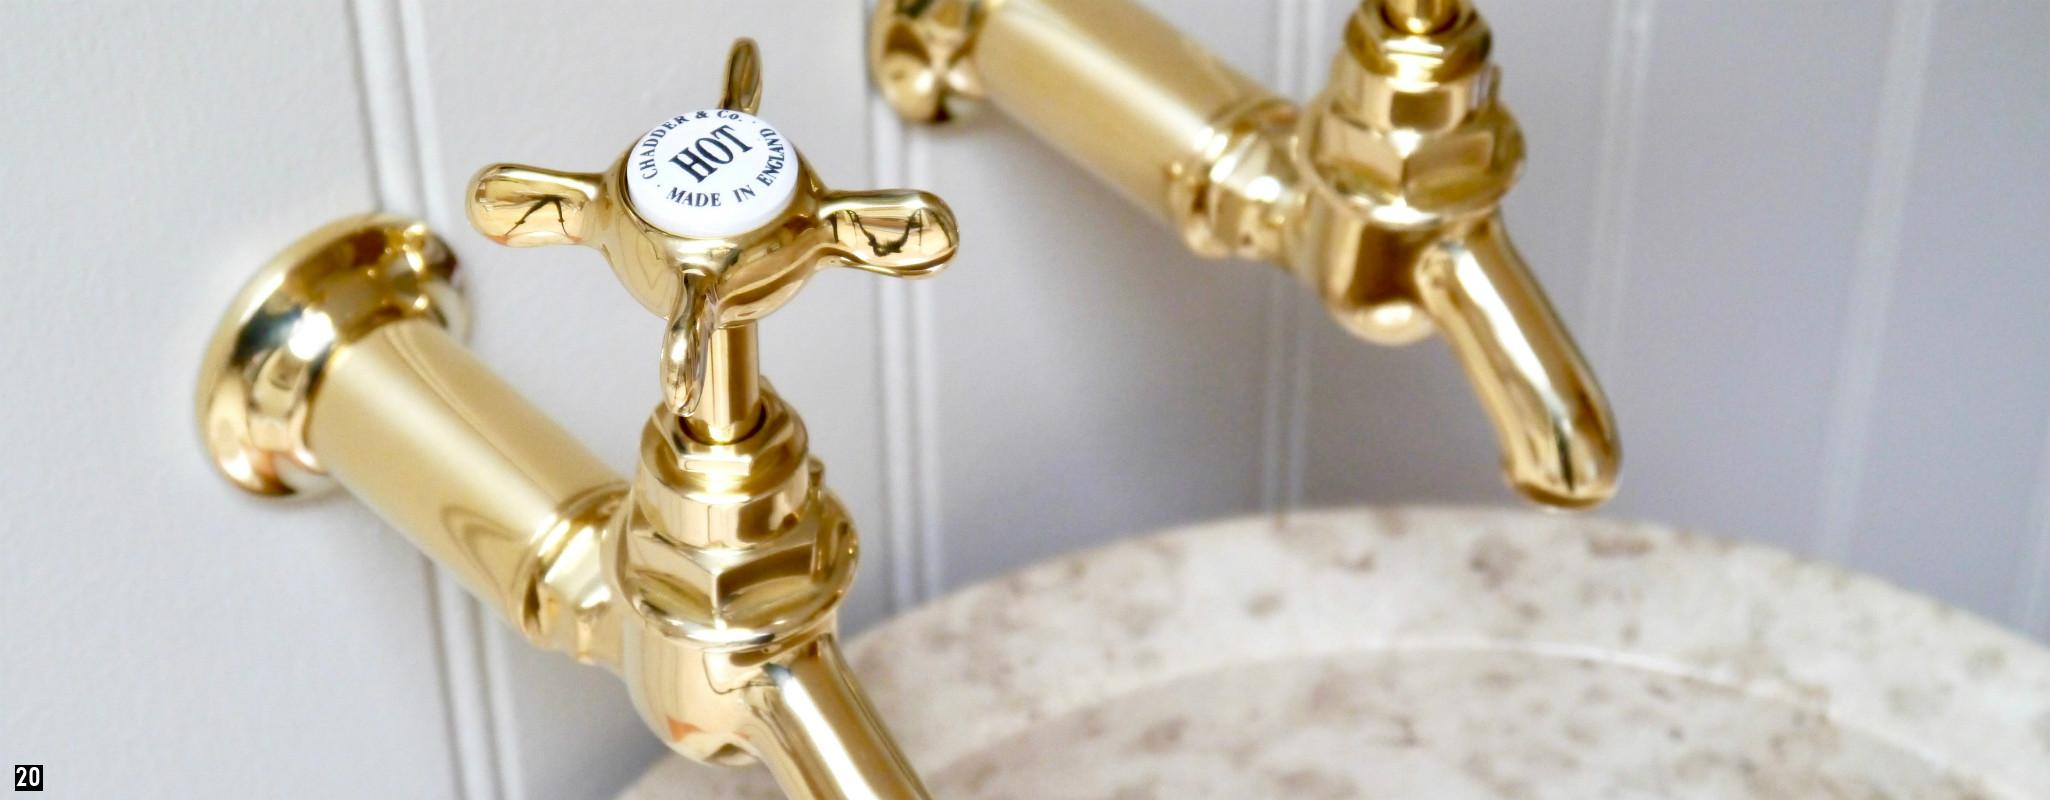 Bespoke Taps & Mixers | Product Categories | Chadder & Co.